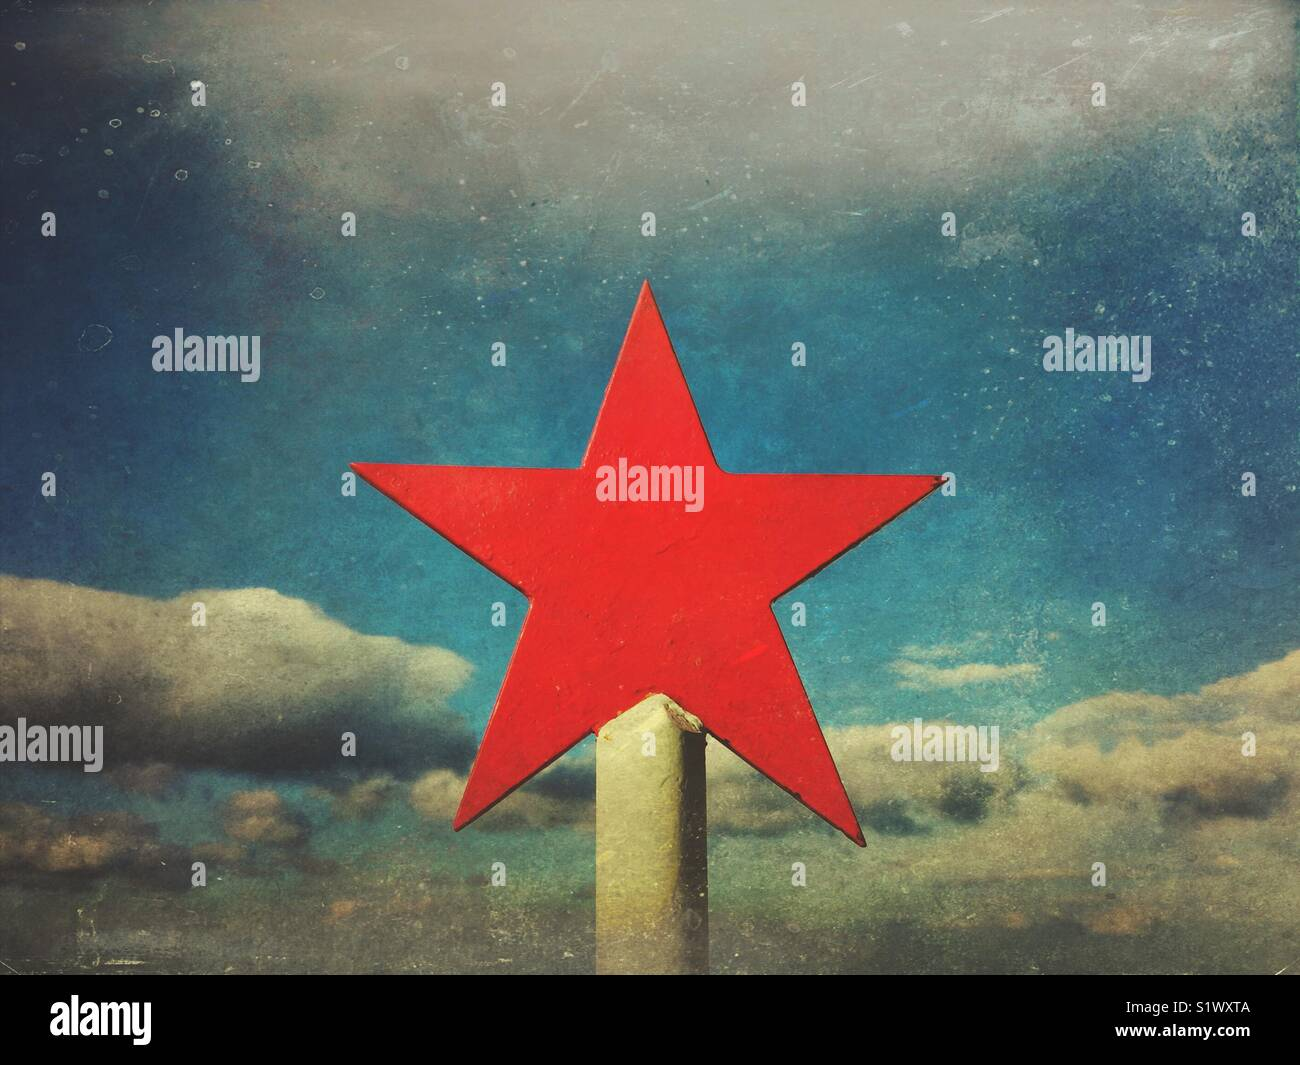 Five-pointed red star against cloudy sky - Stock Image